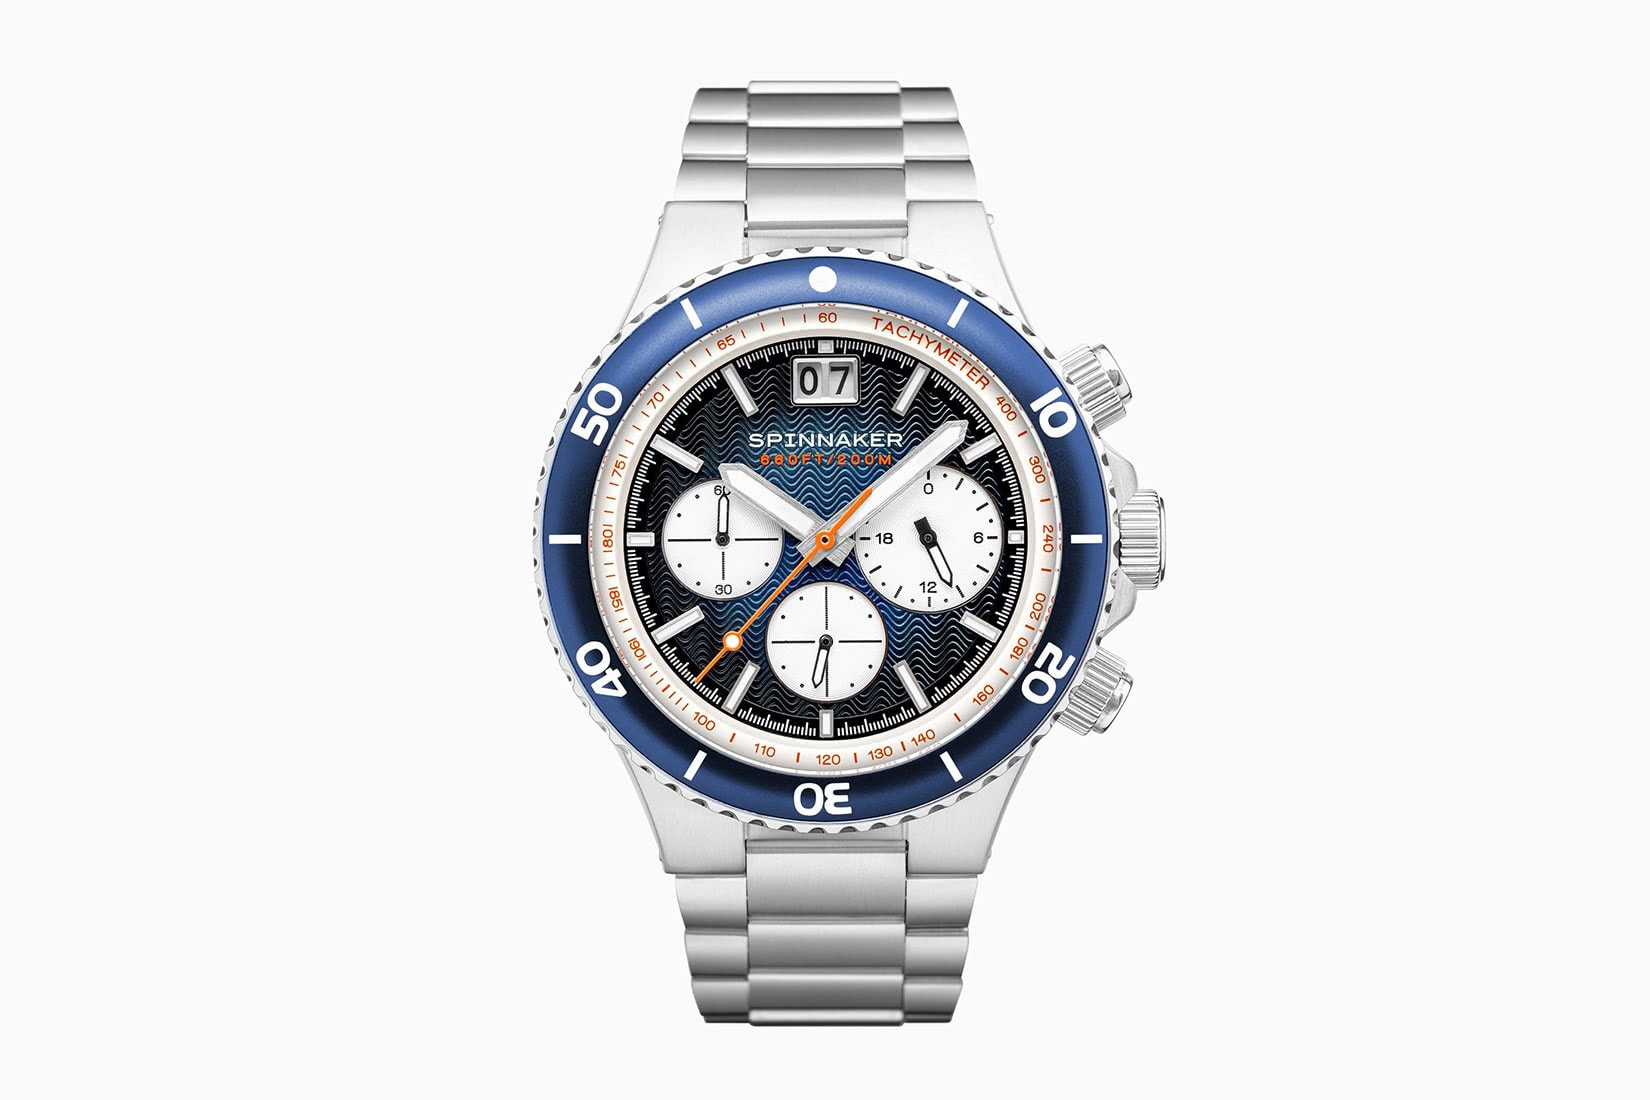 best men watches spinnaker hydrofoil chronograph review - Luxe Digital